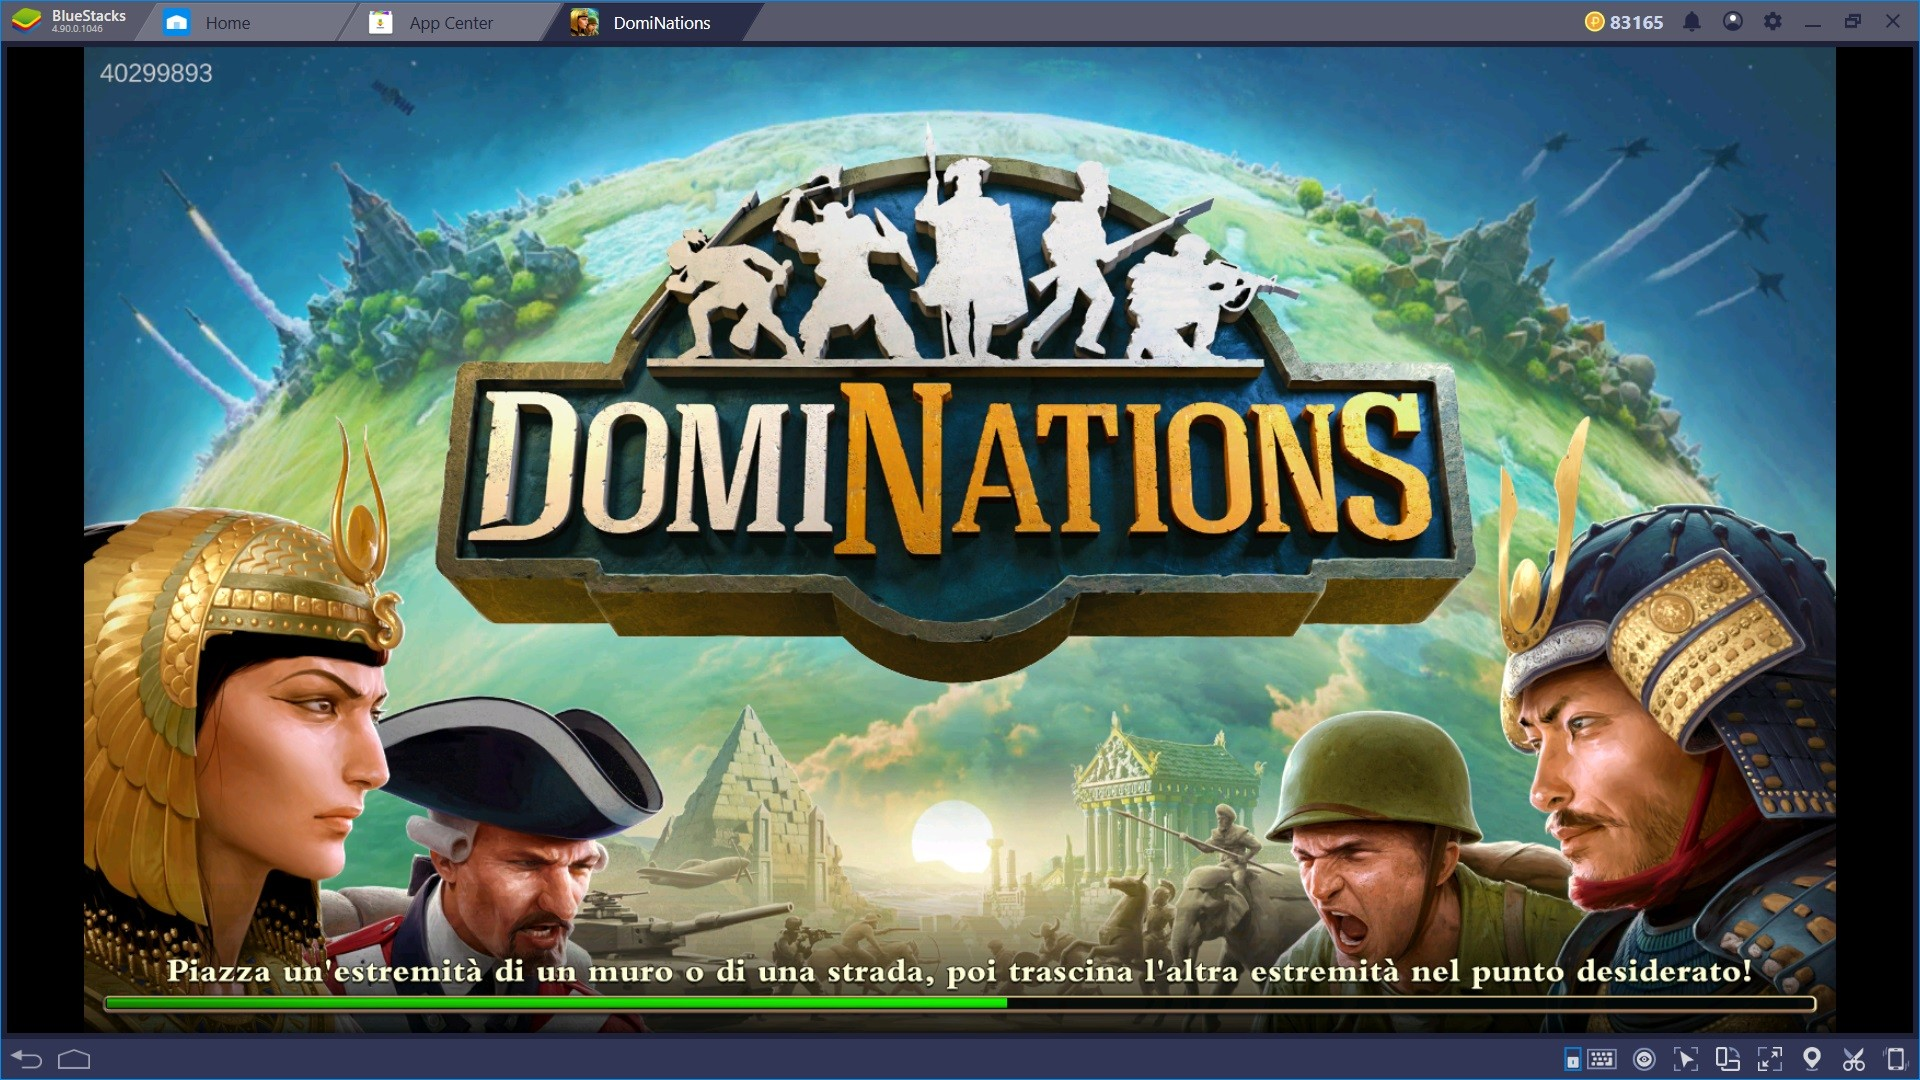 Gioca a DomiNations e conquista il mondo con Bluestacks!